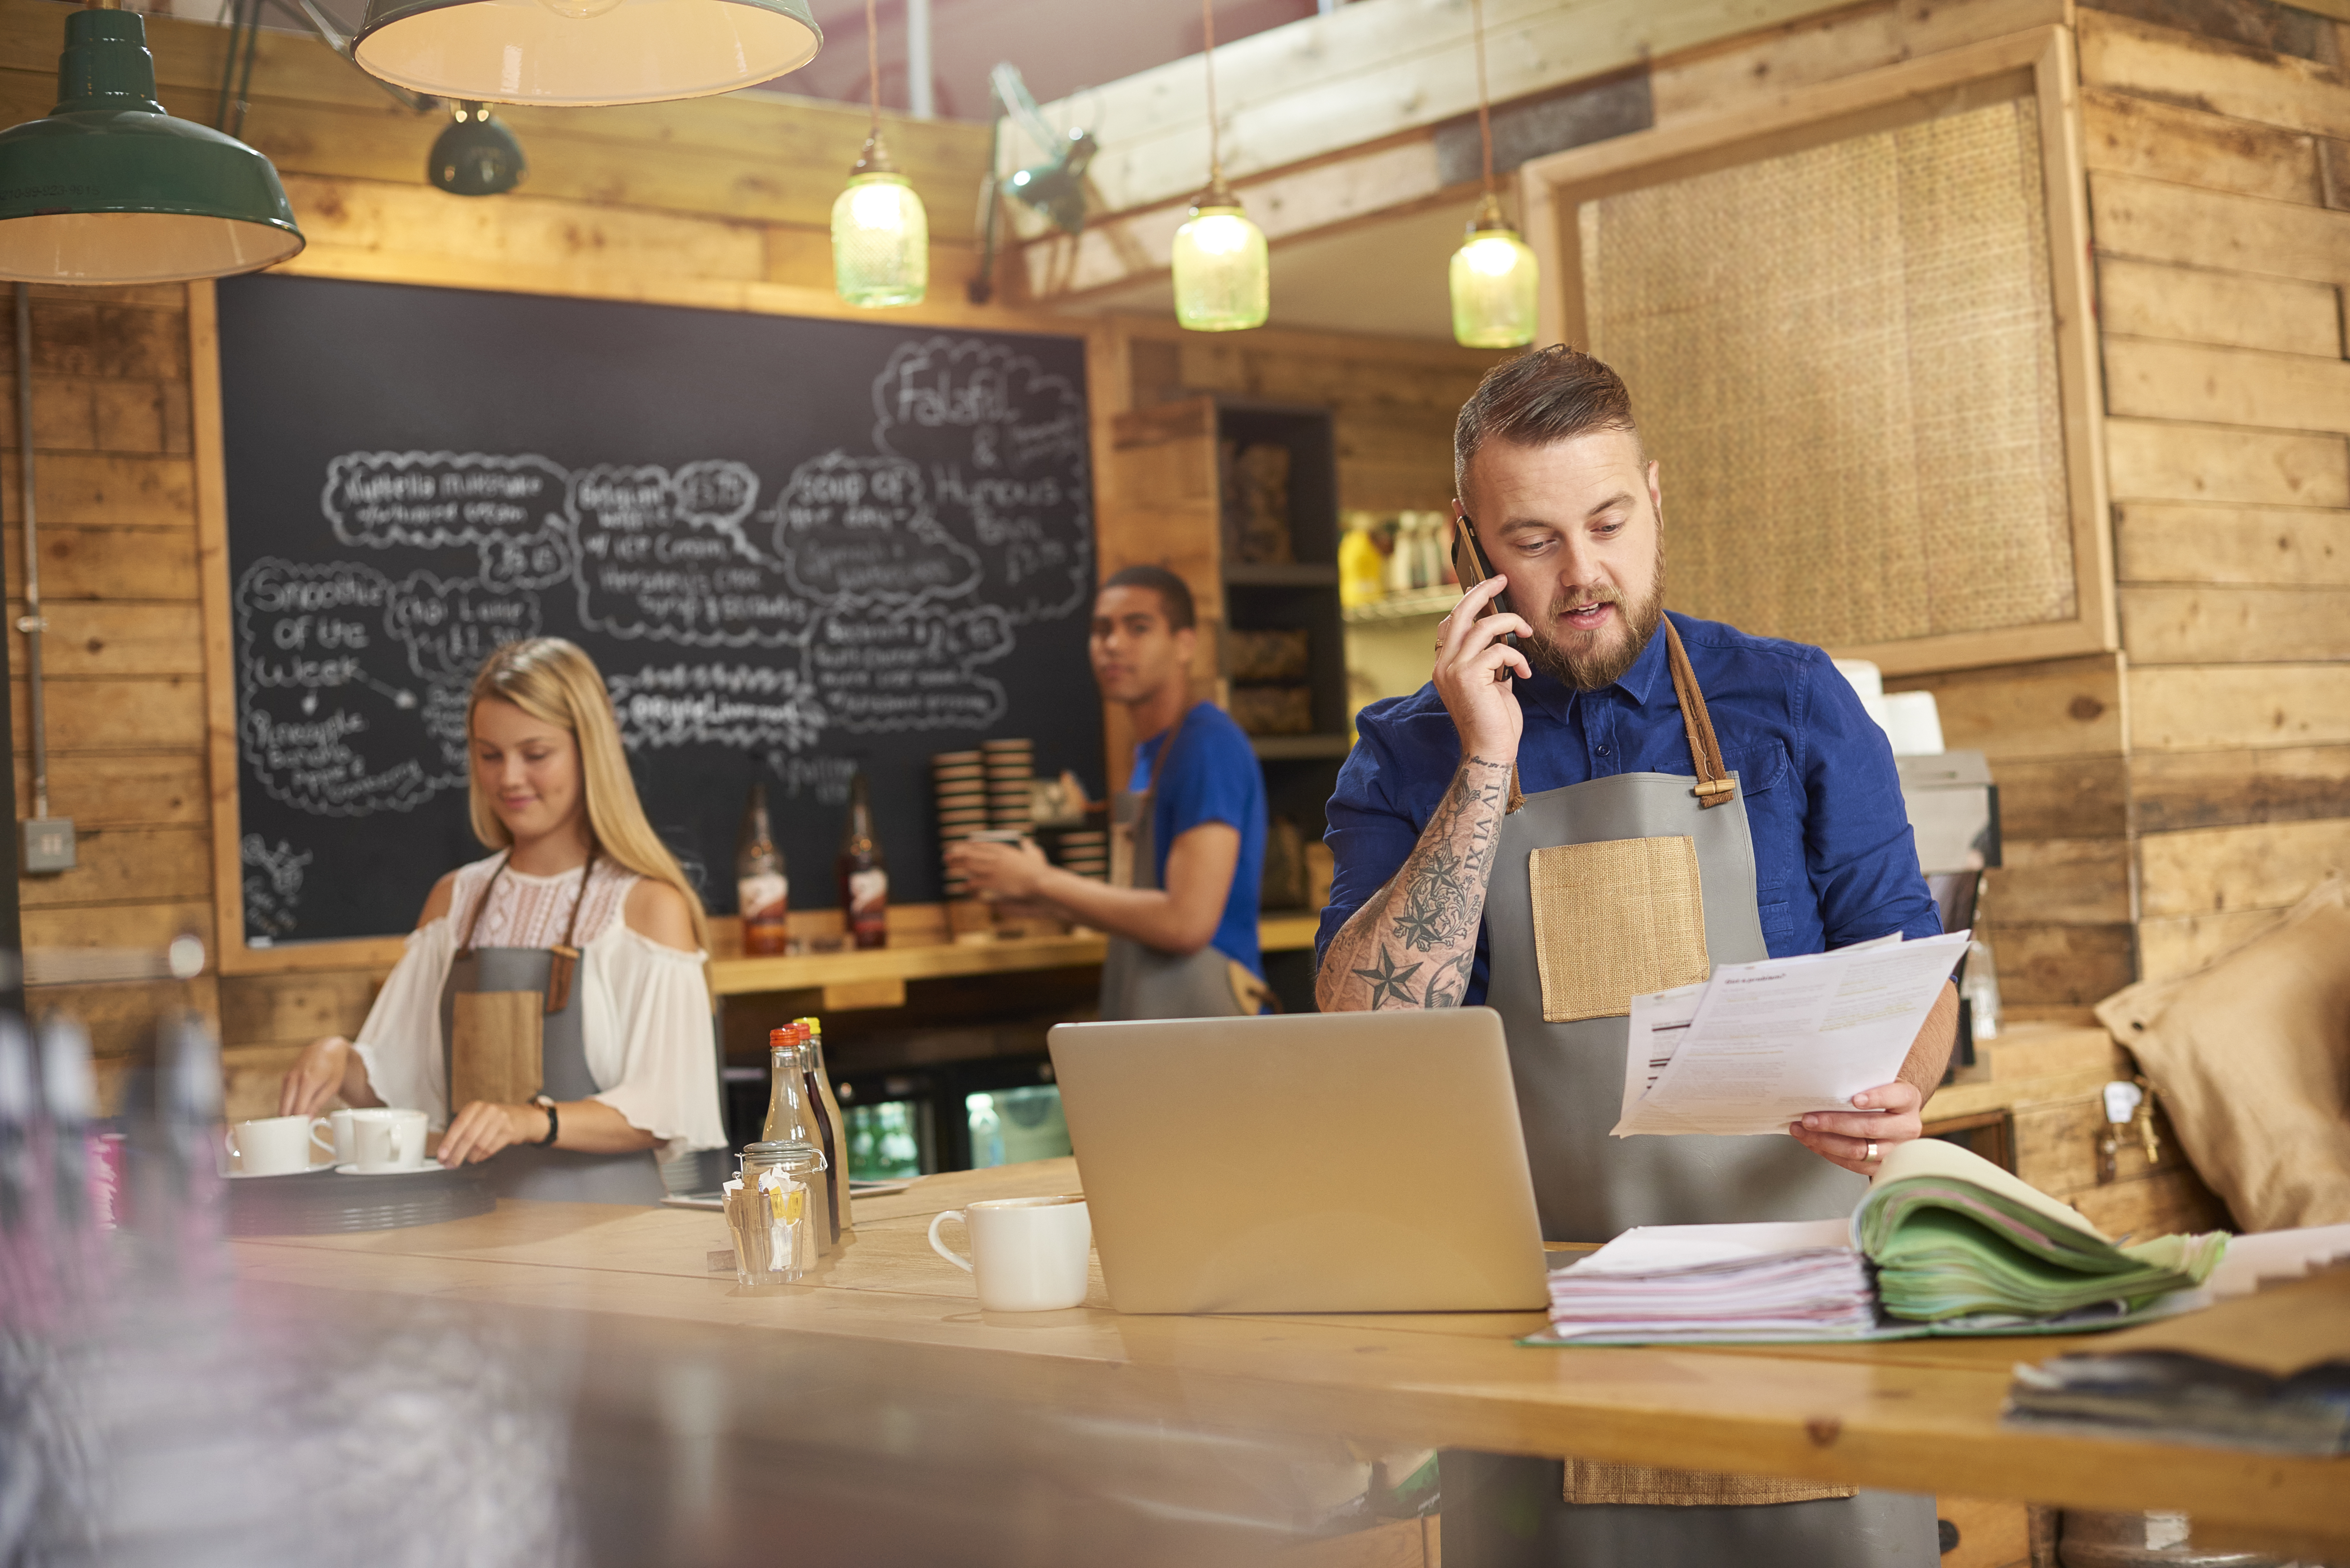 Coffee-shop-owner-phoning-accountant-597272594_7360x4912-1